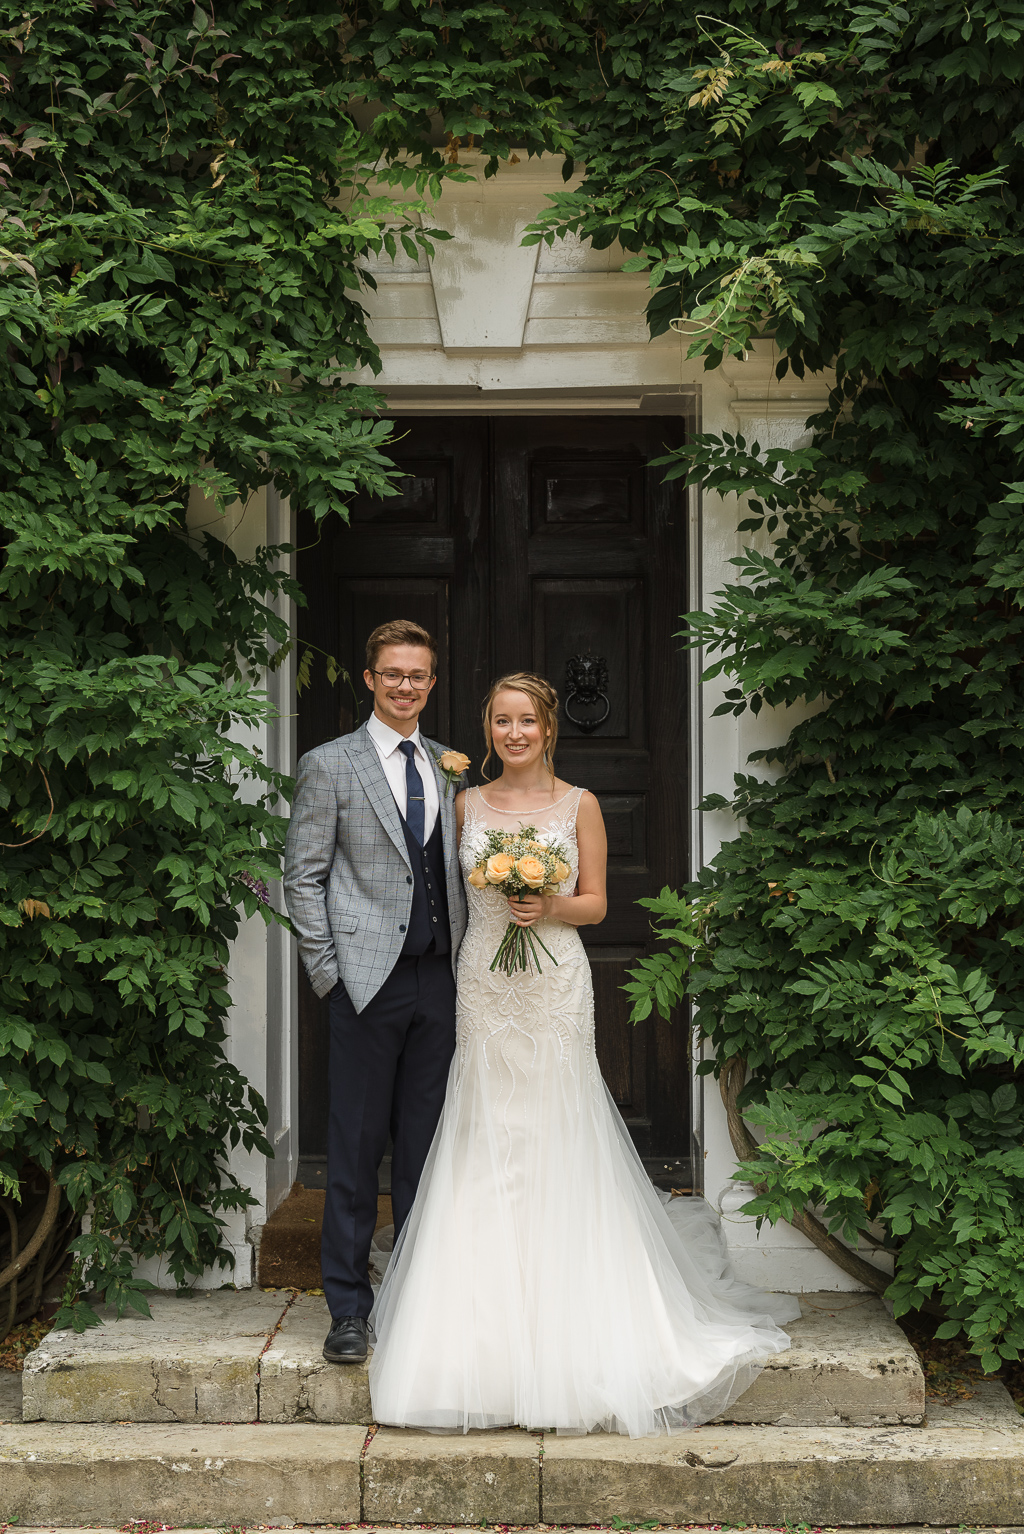 Bride and Groom posing outside Sprivers Mansion Elopement Photo Shoot | Kent Wedding Photographer | Oakhouse Photography